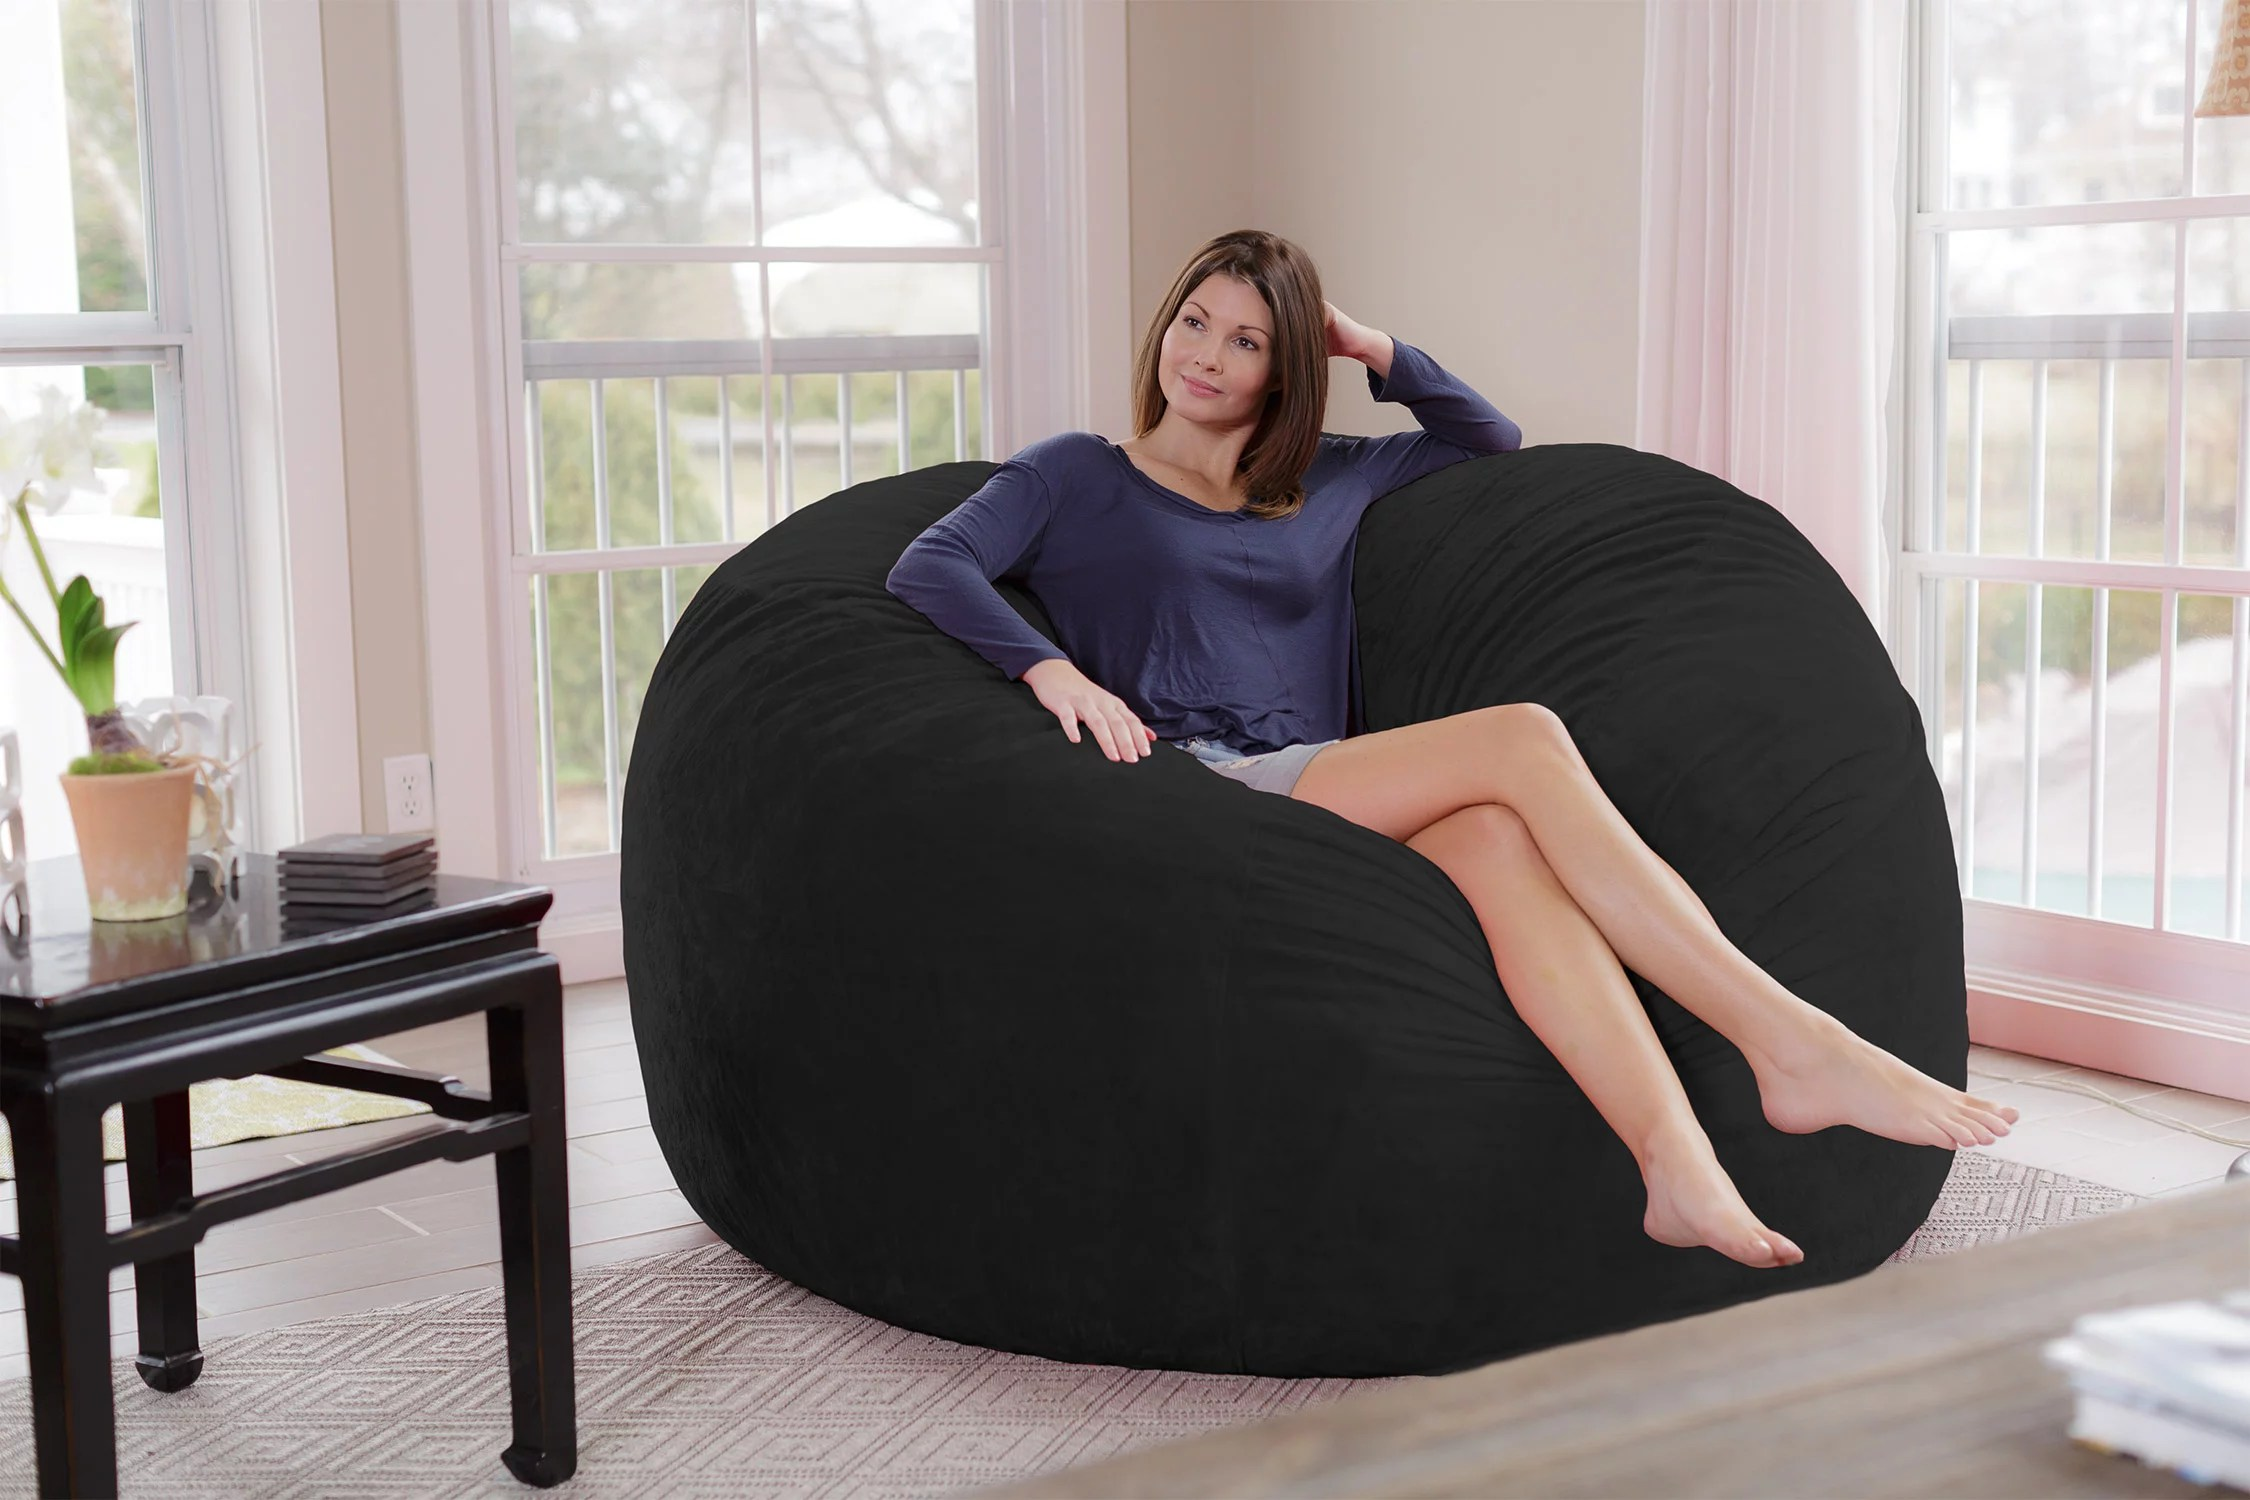 6 foot bean bag chair chairs for kids chill sack giant ft multiple colors fabrics walmart com